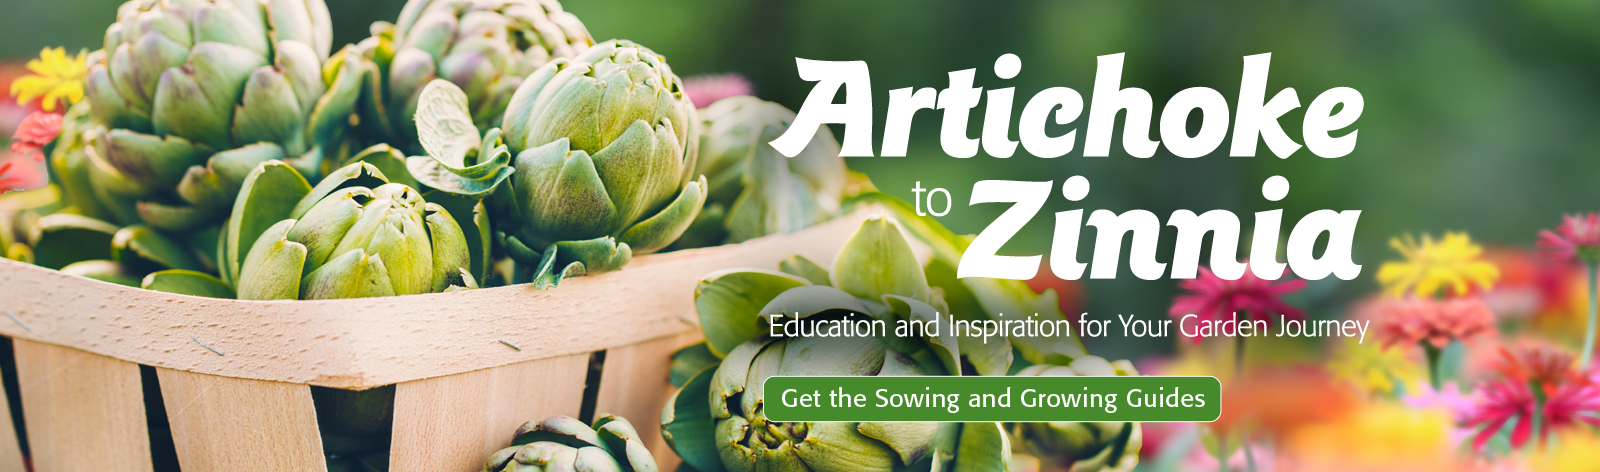 Artichoke to Zinnia - Education and Inspiration for Your Garden Journey - Get the Sowing and Growing Guides